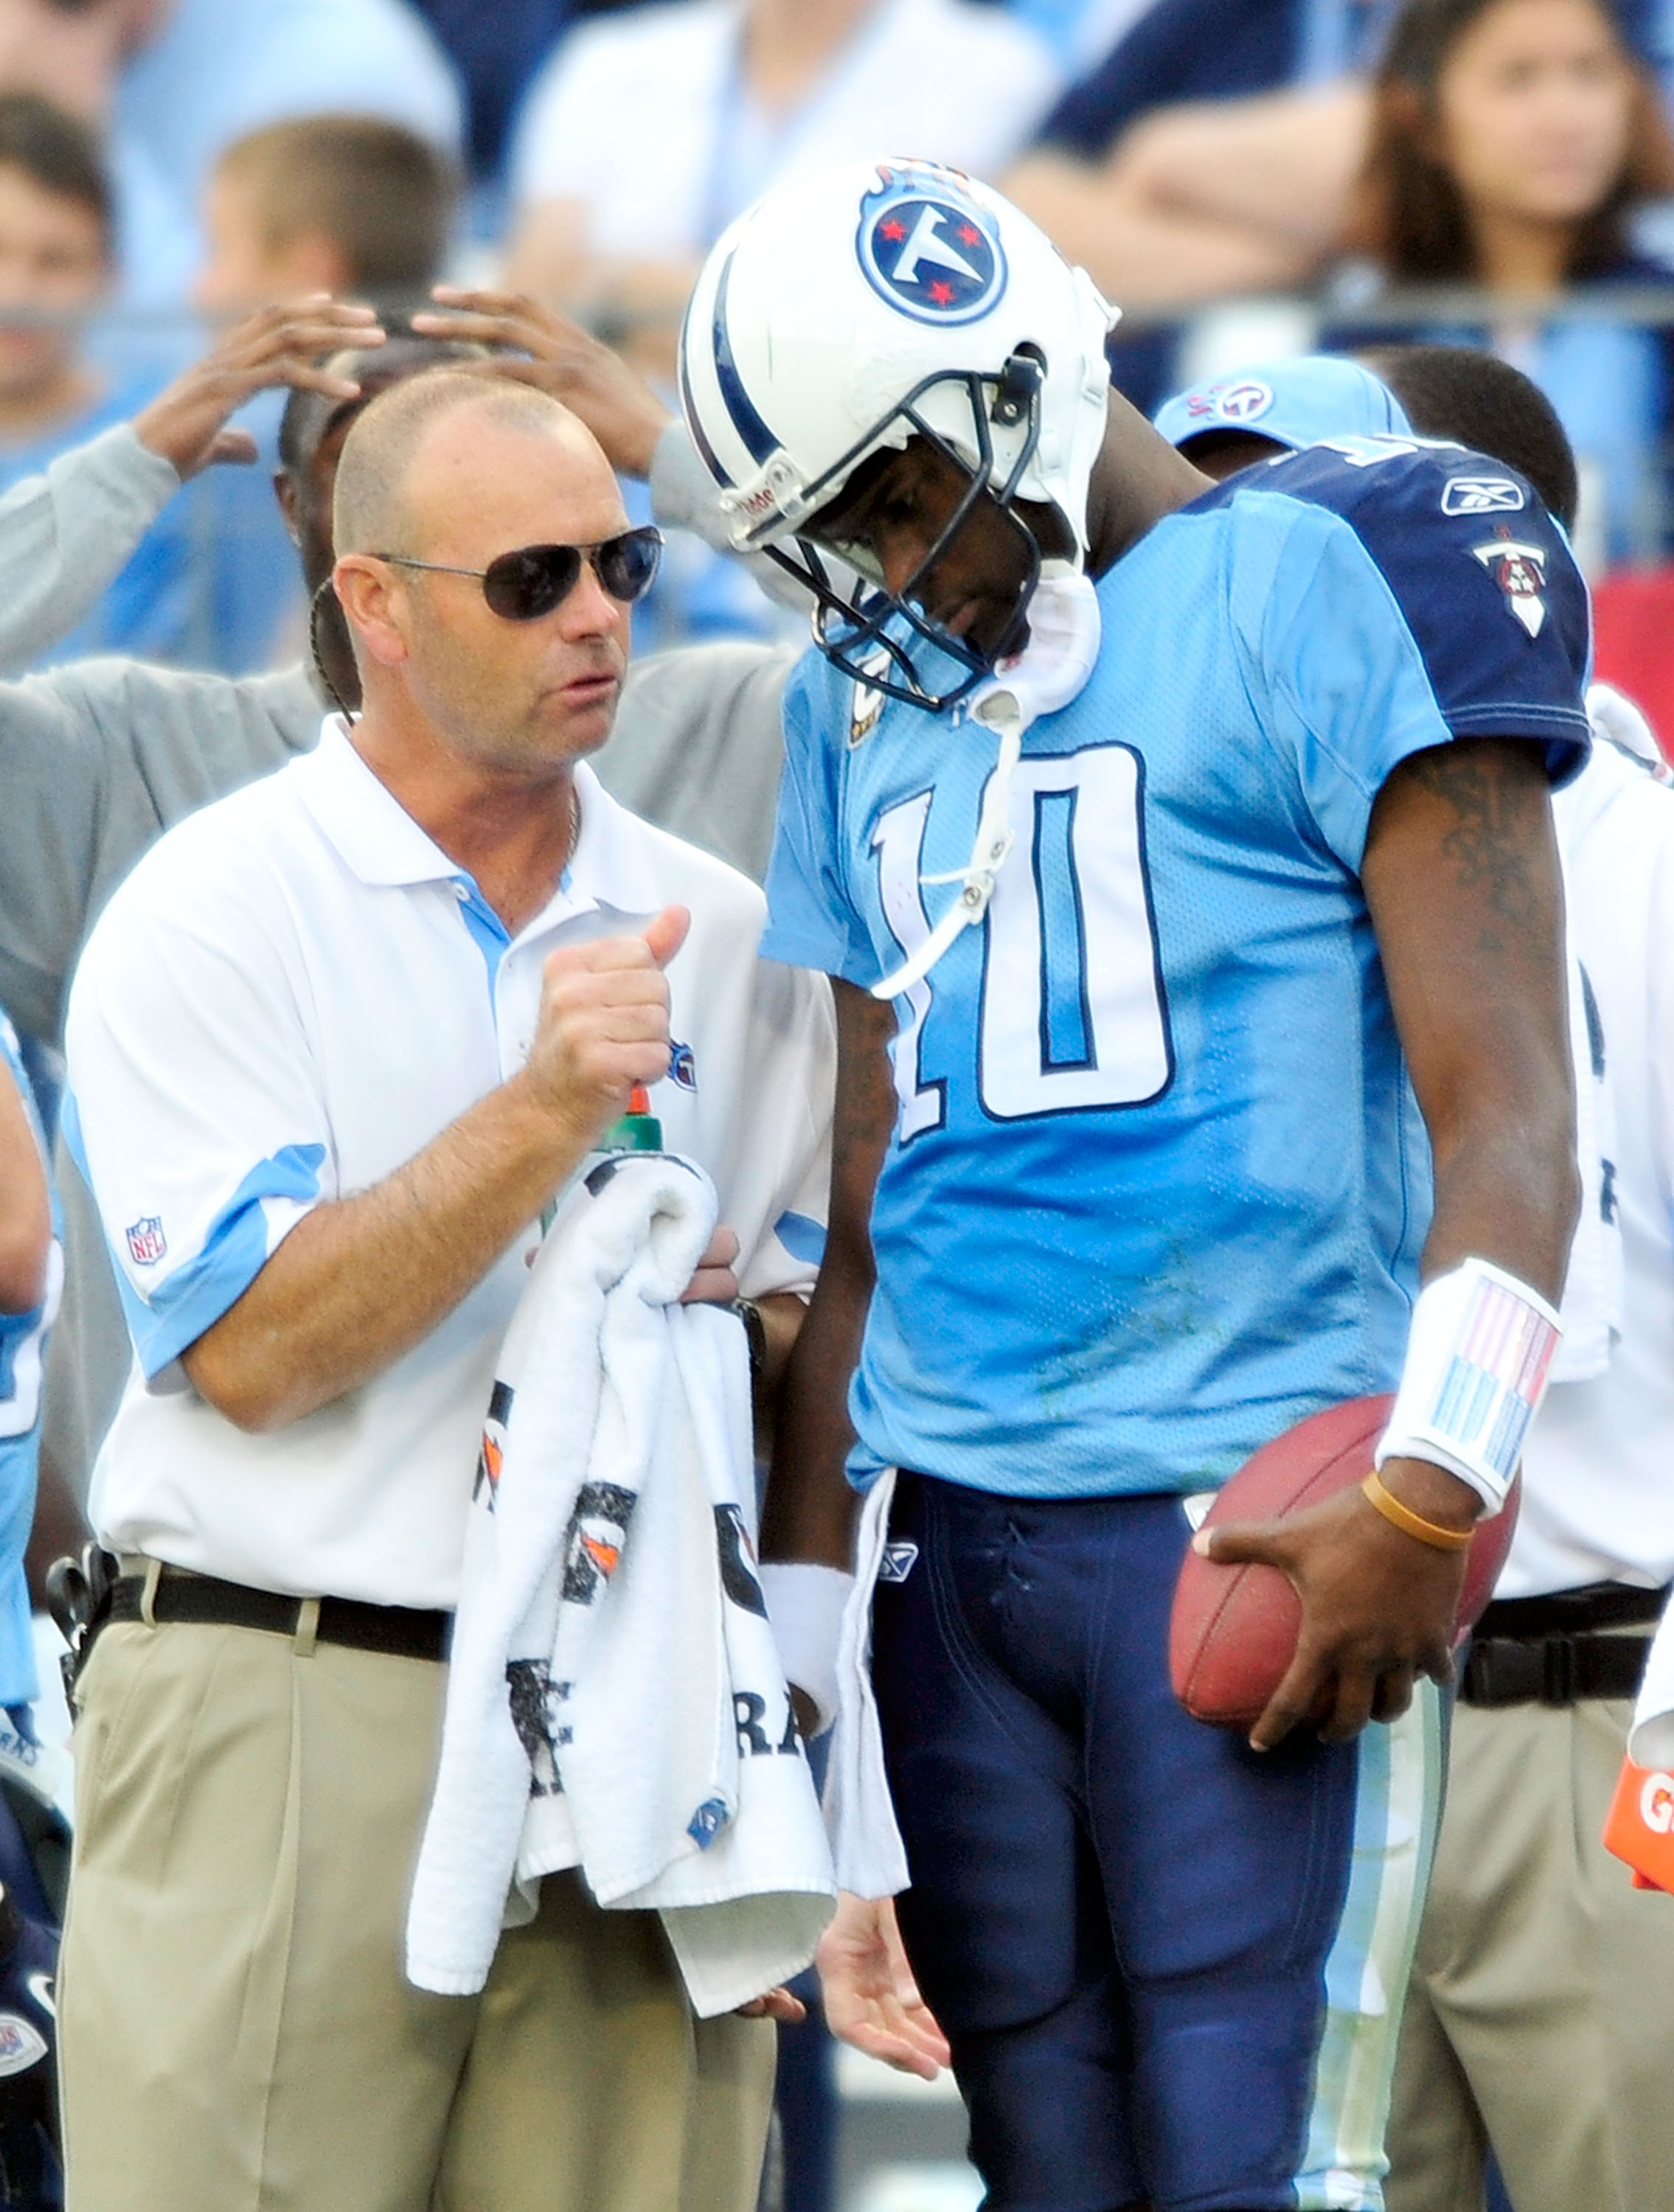 NASHVILLE, TN - NOVEMBER 21:  Quarterback Vince Young #11 of the Tennessee Titans talks with a member of the training staff after leaving a game against the Washington Redskins at LP Field on November 21, 2010 in Nashville, Tennessee. The Redskins won 19-